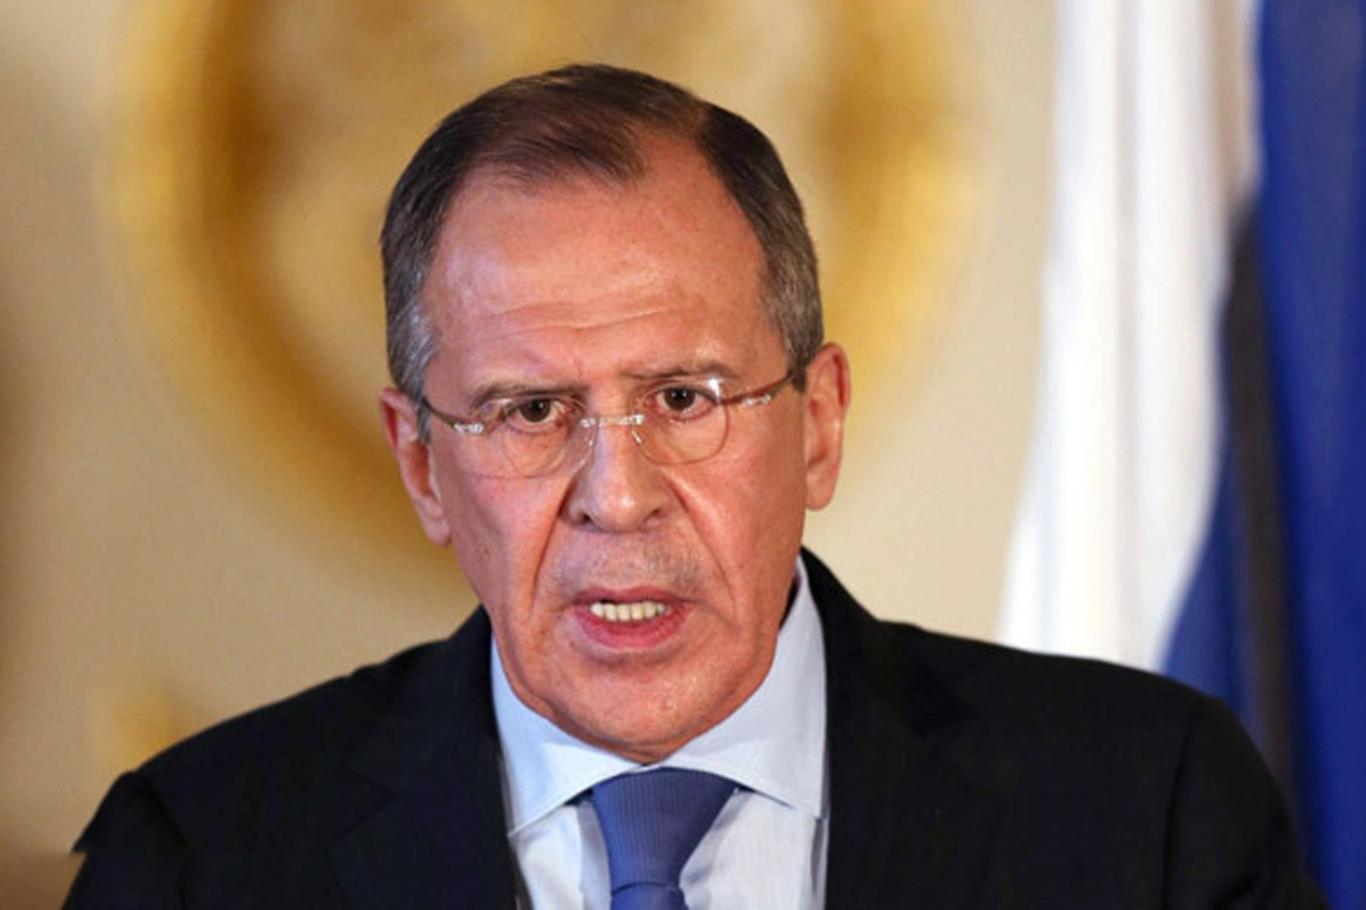 Russia: The sides agreed on draft conclusions on Libya